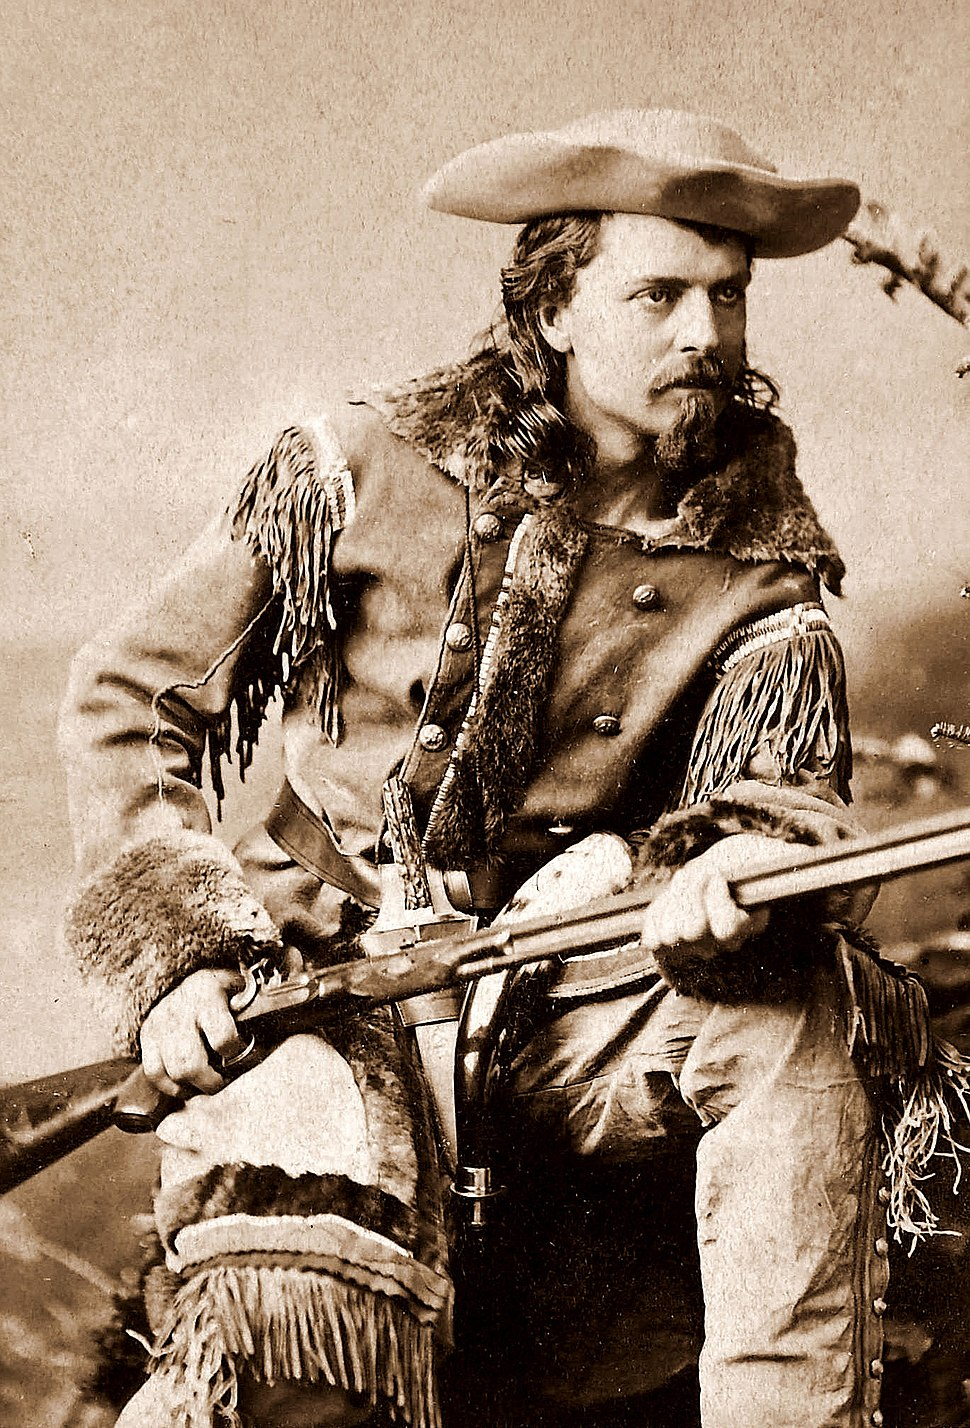 Buffalo Bill Cody by Sarony, c1880